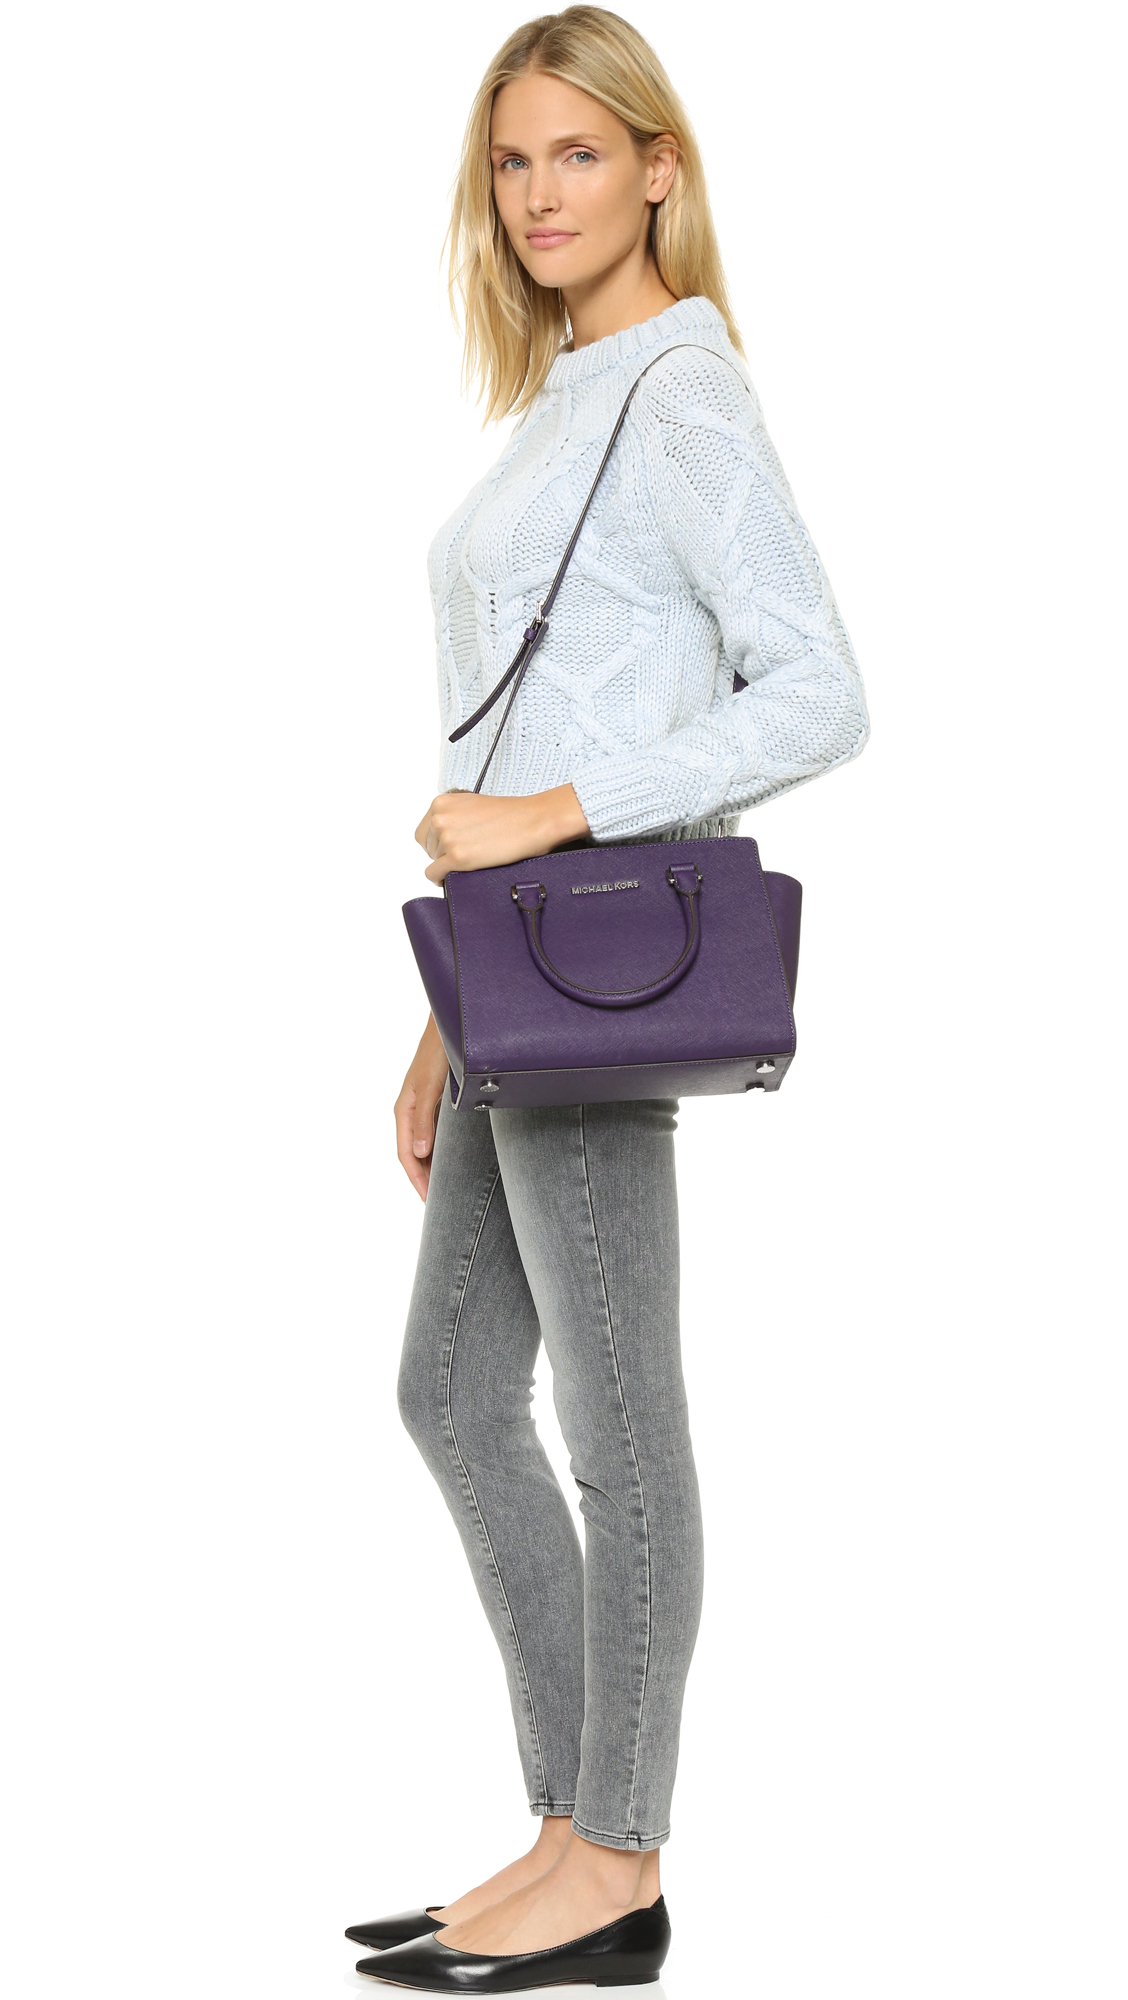 ad784db7f1480b Gallery. Previously sold at: Shopbop · Women's Michael By Michael Kors Selma